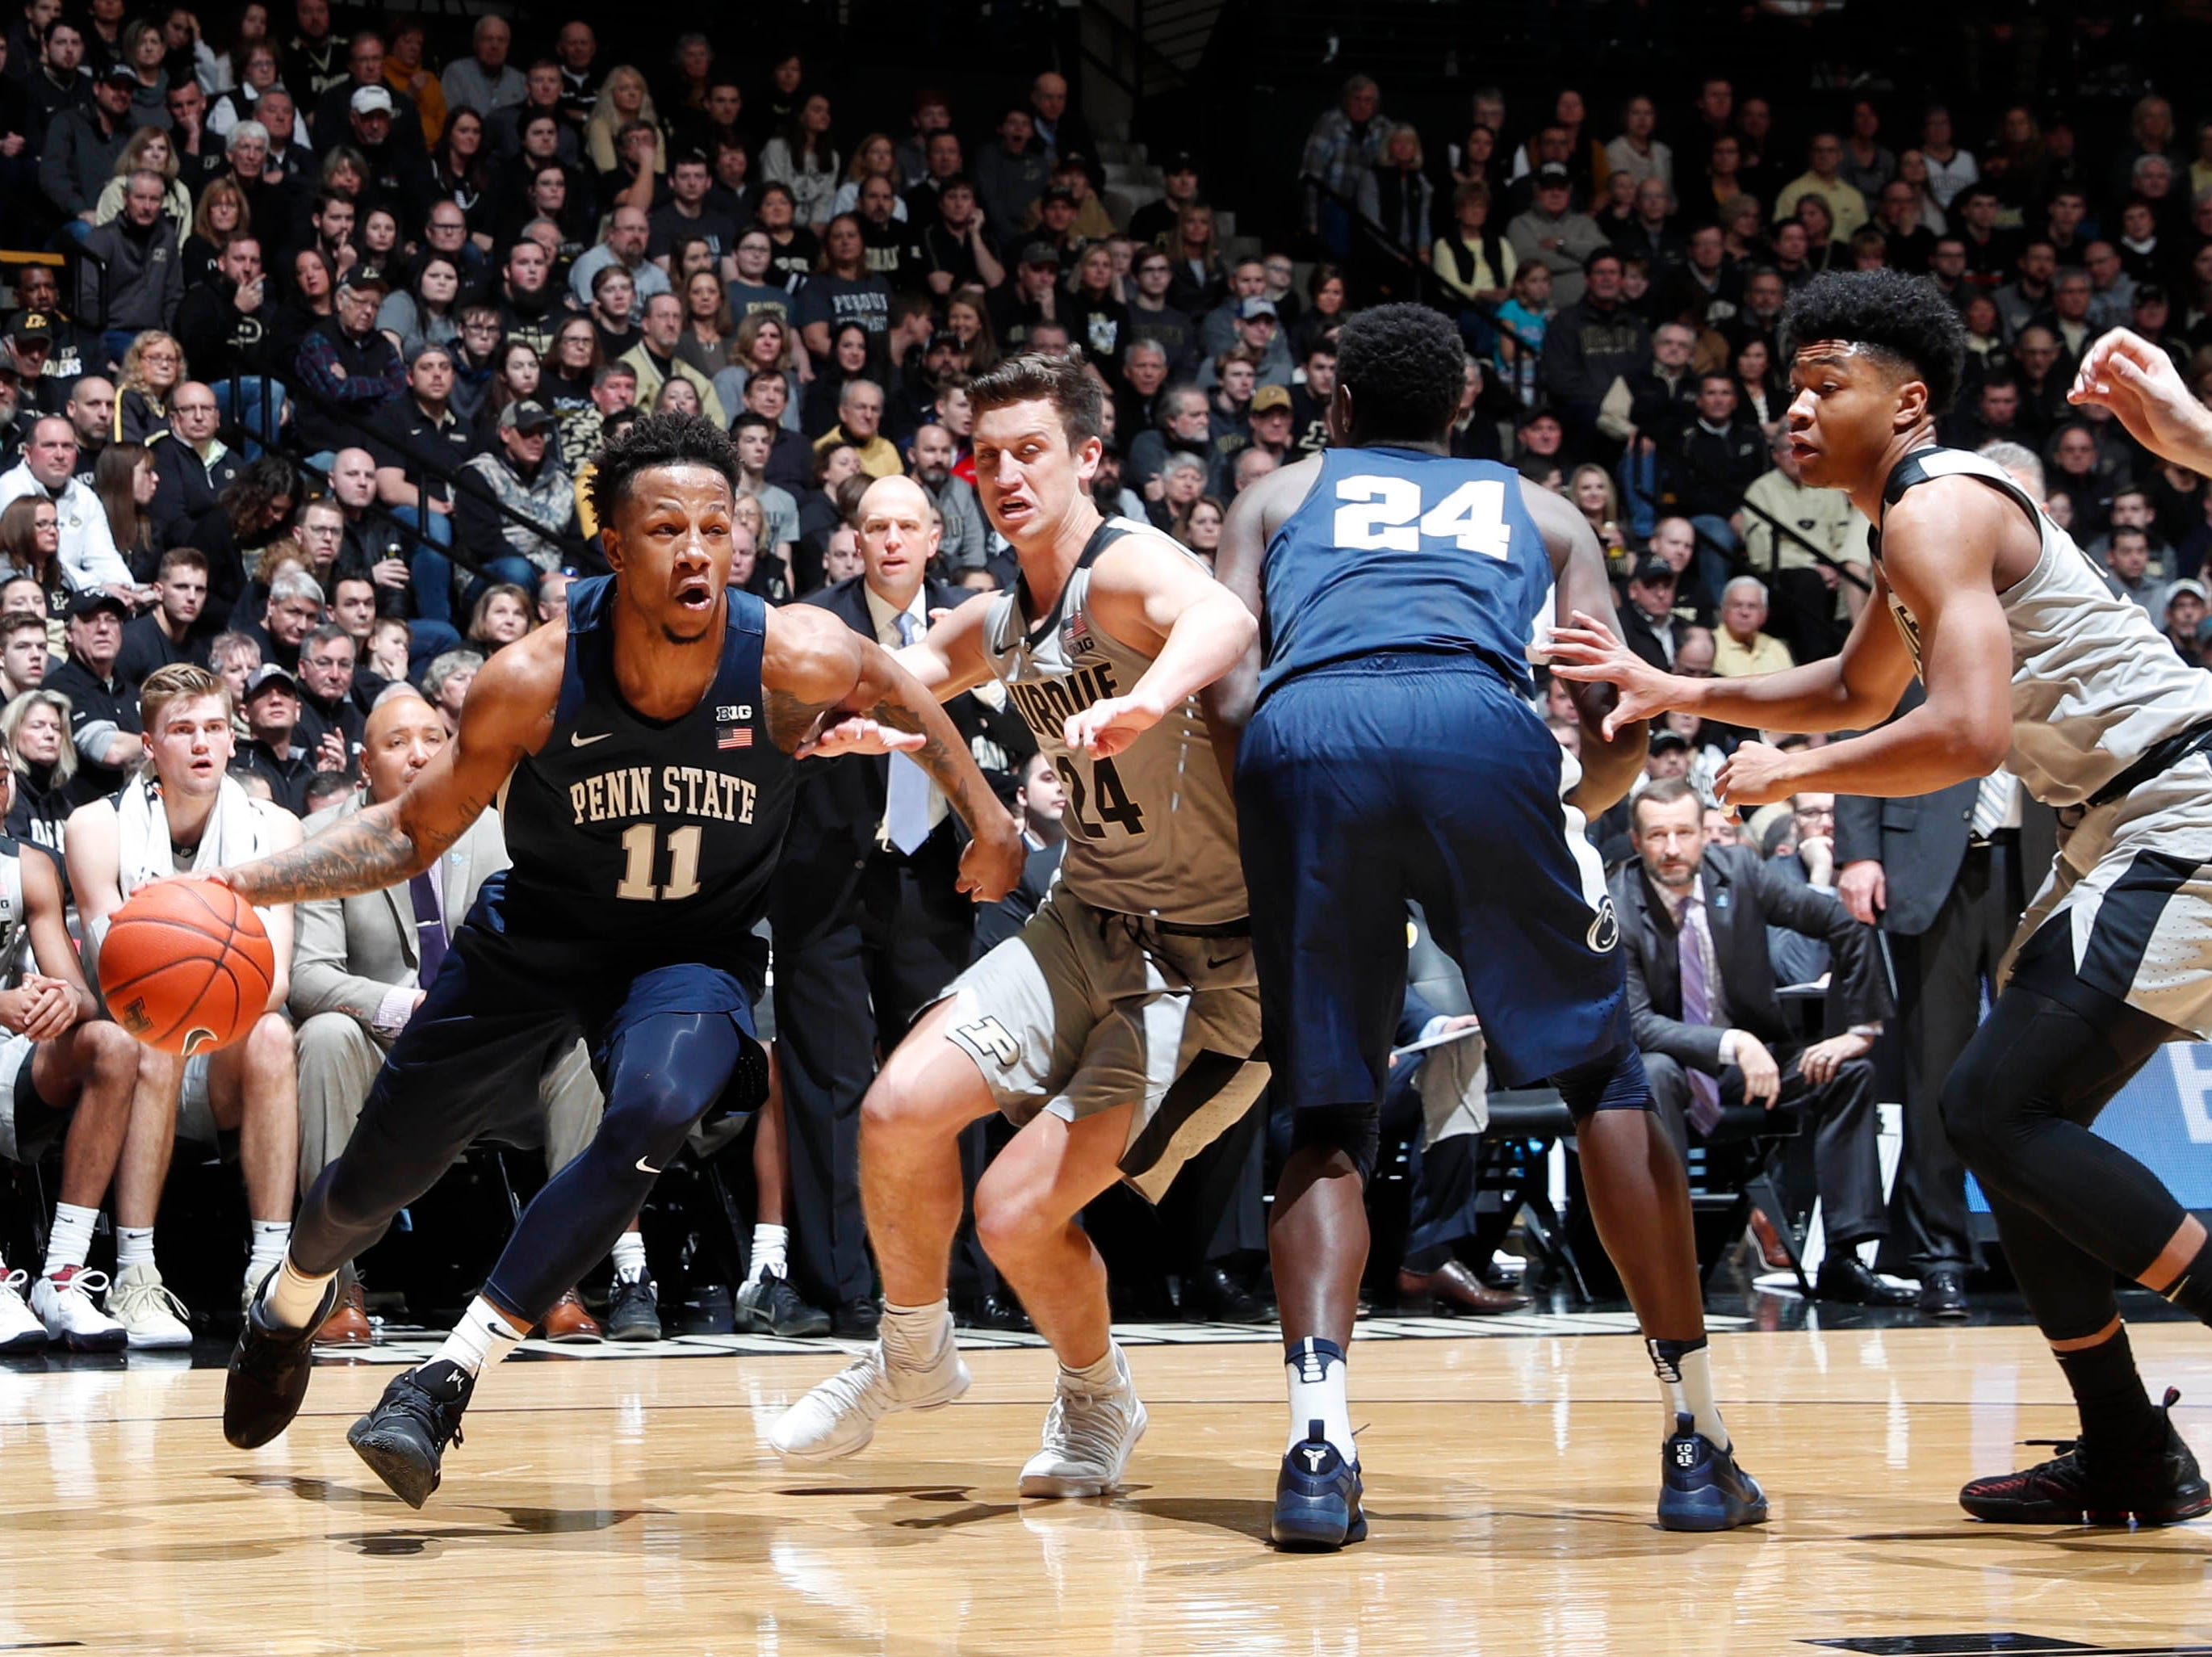 Feb 16, 2019; West Lafayette, IN, USA; Penn State Nittany Lions forward Lamar Stevens (11) drives to the basket against Purdue Boilermakers forward Grady Eifert (24) during the first half at Mackey Arena. Mandatory Credit: Brian Spurlock-USA TODAY Sports